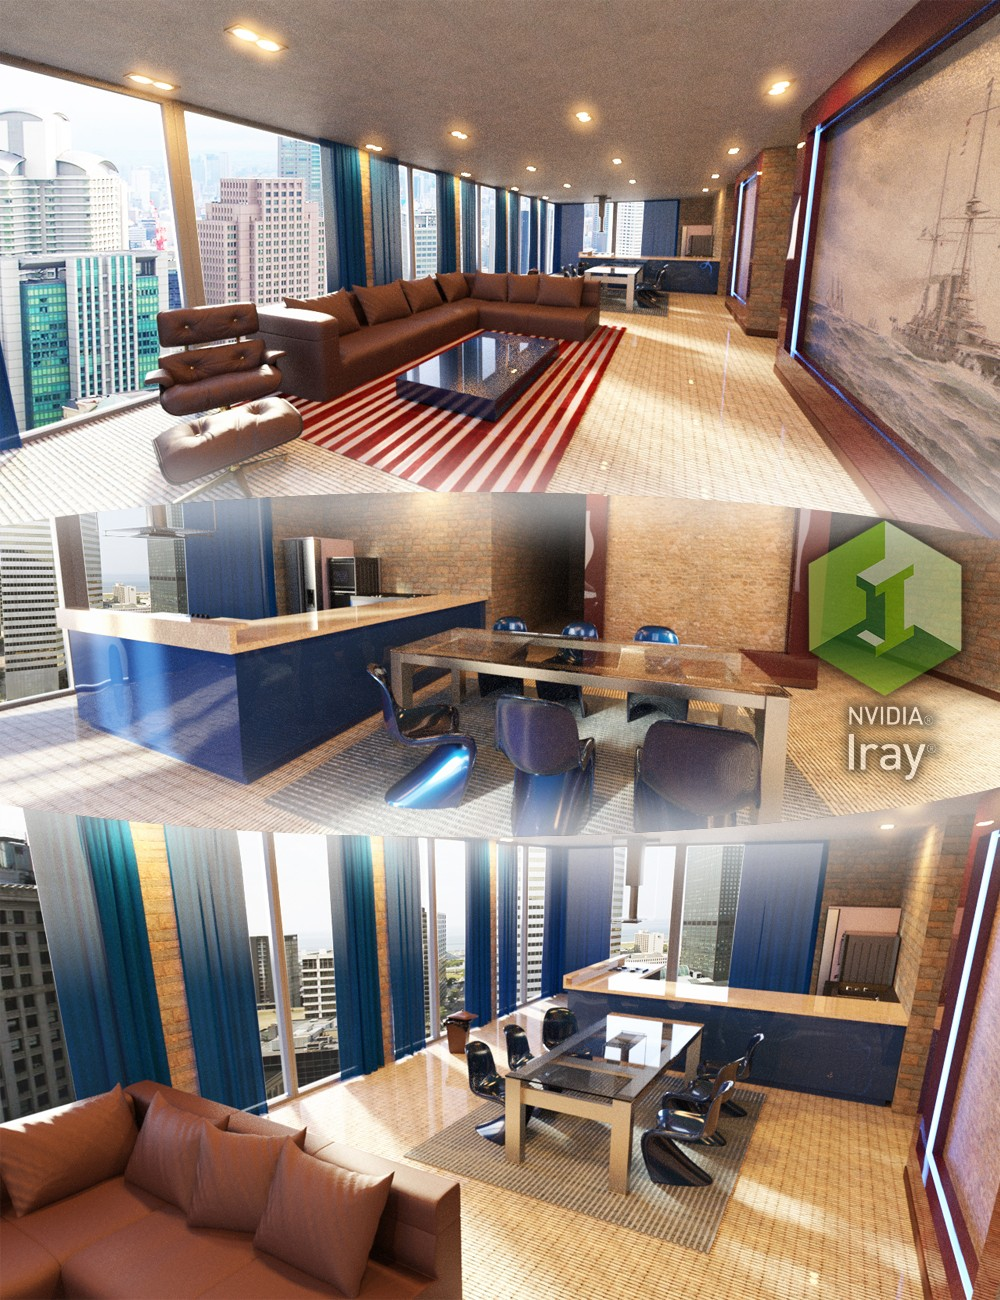 Download daz studio 3 for free daz 3d tesla studio for Studio apartment design 3d